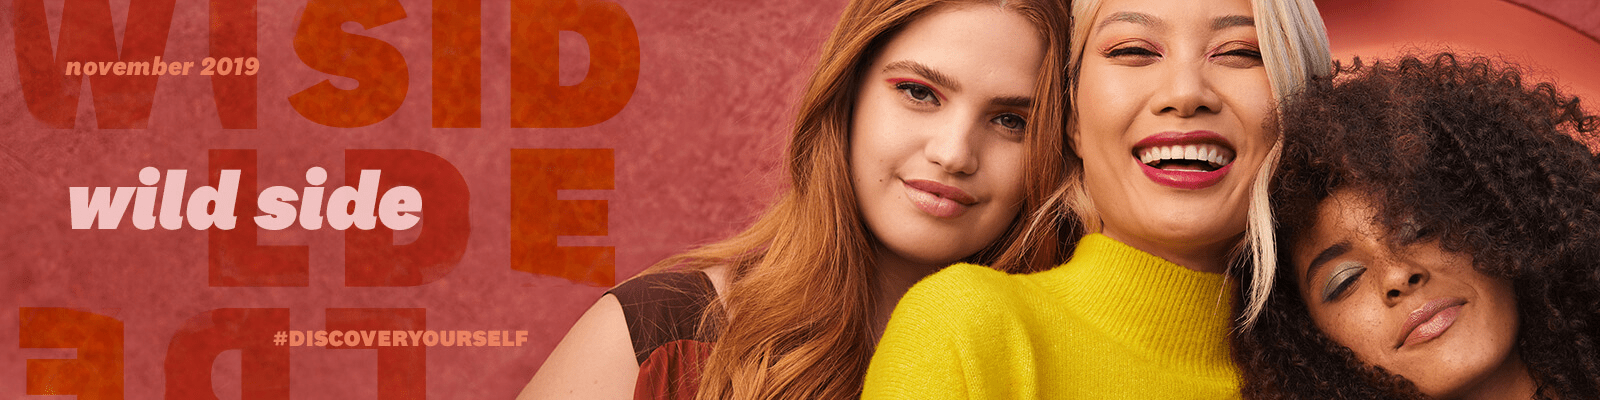 Ipsy Glam Bag Ultimate November 2019 Full Spoilers + Reveals Available Now!